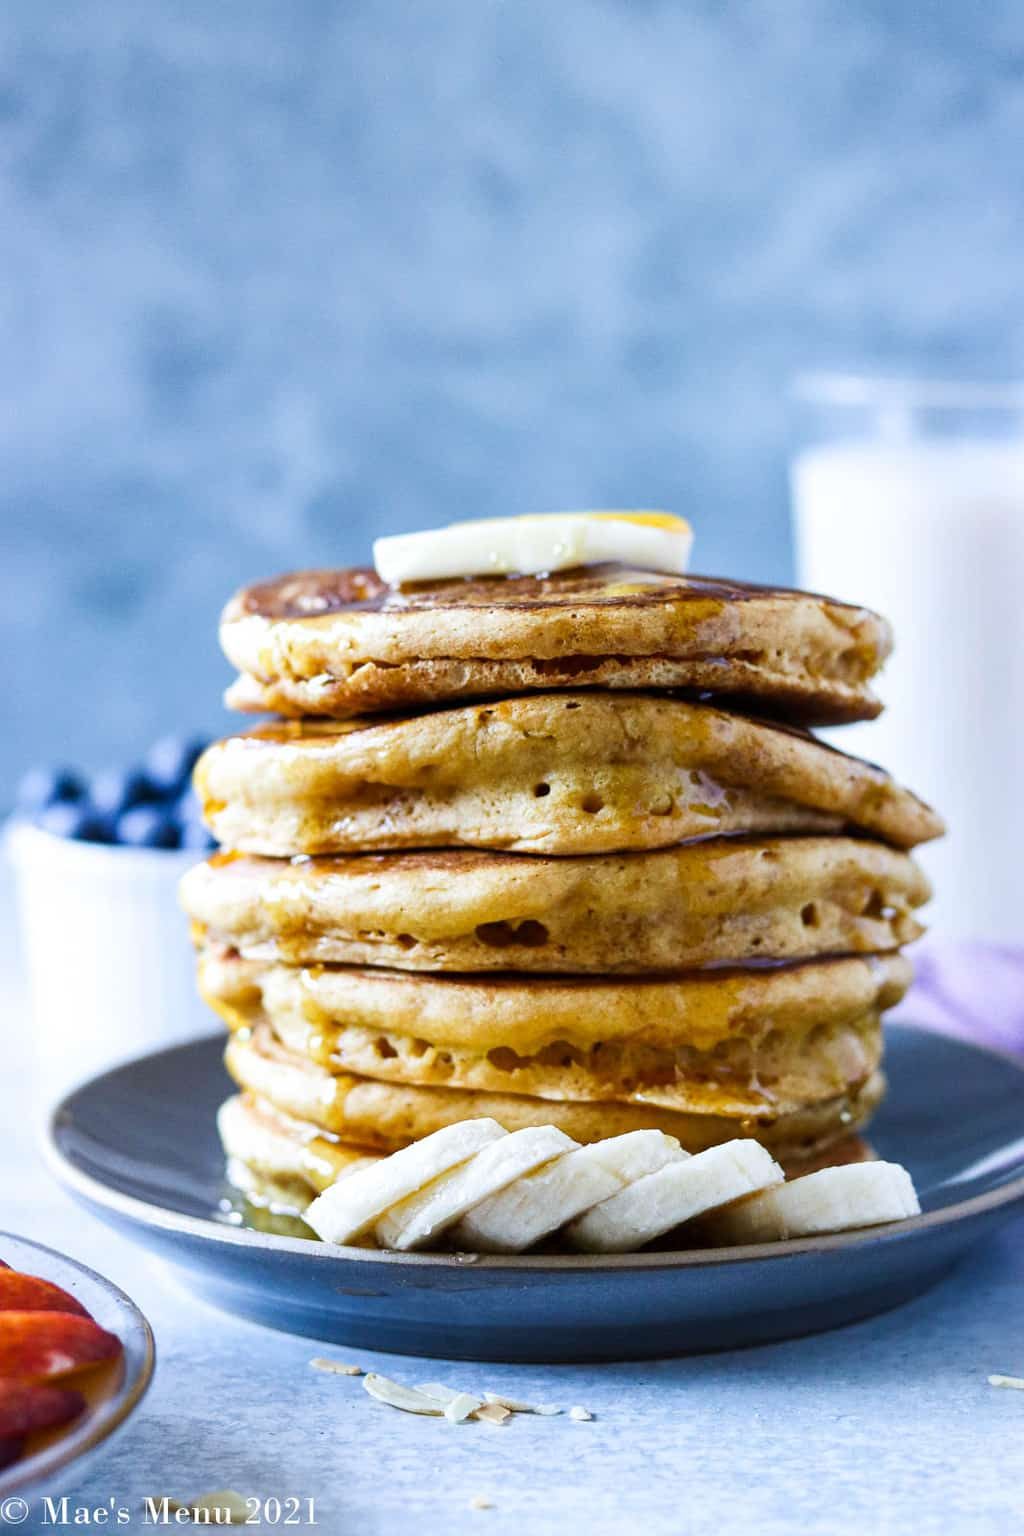 An up-close side shot of a large stack of pancakes with bananas and butter